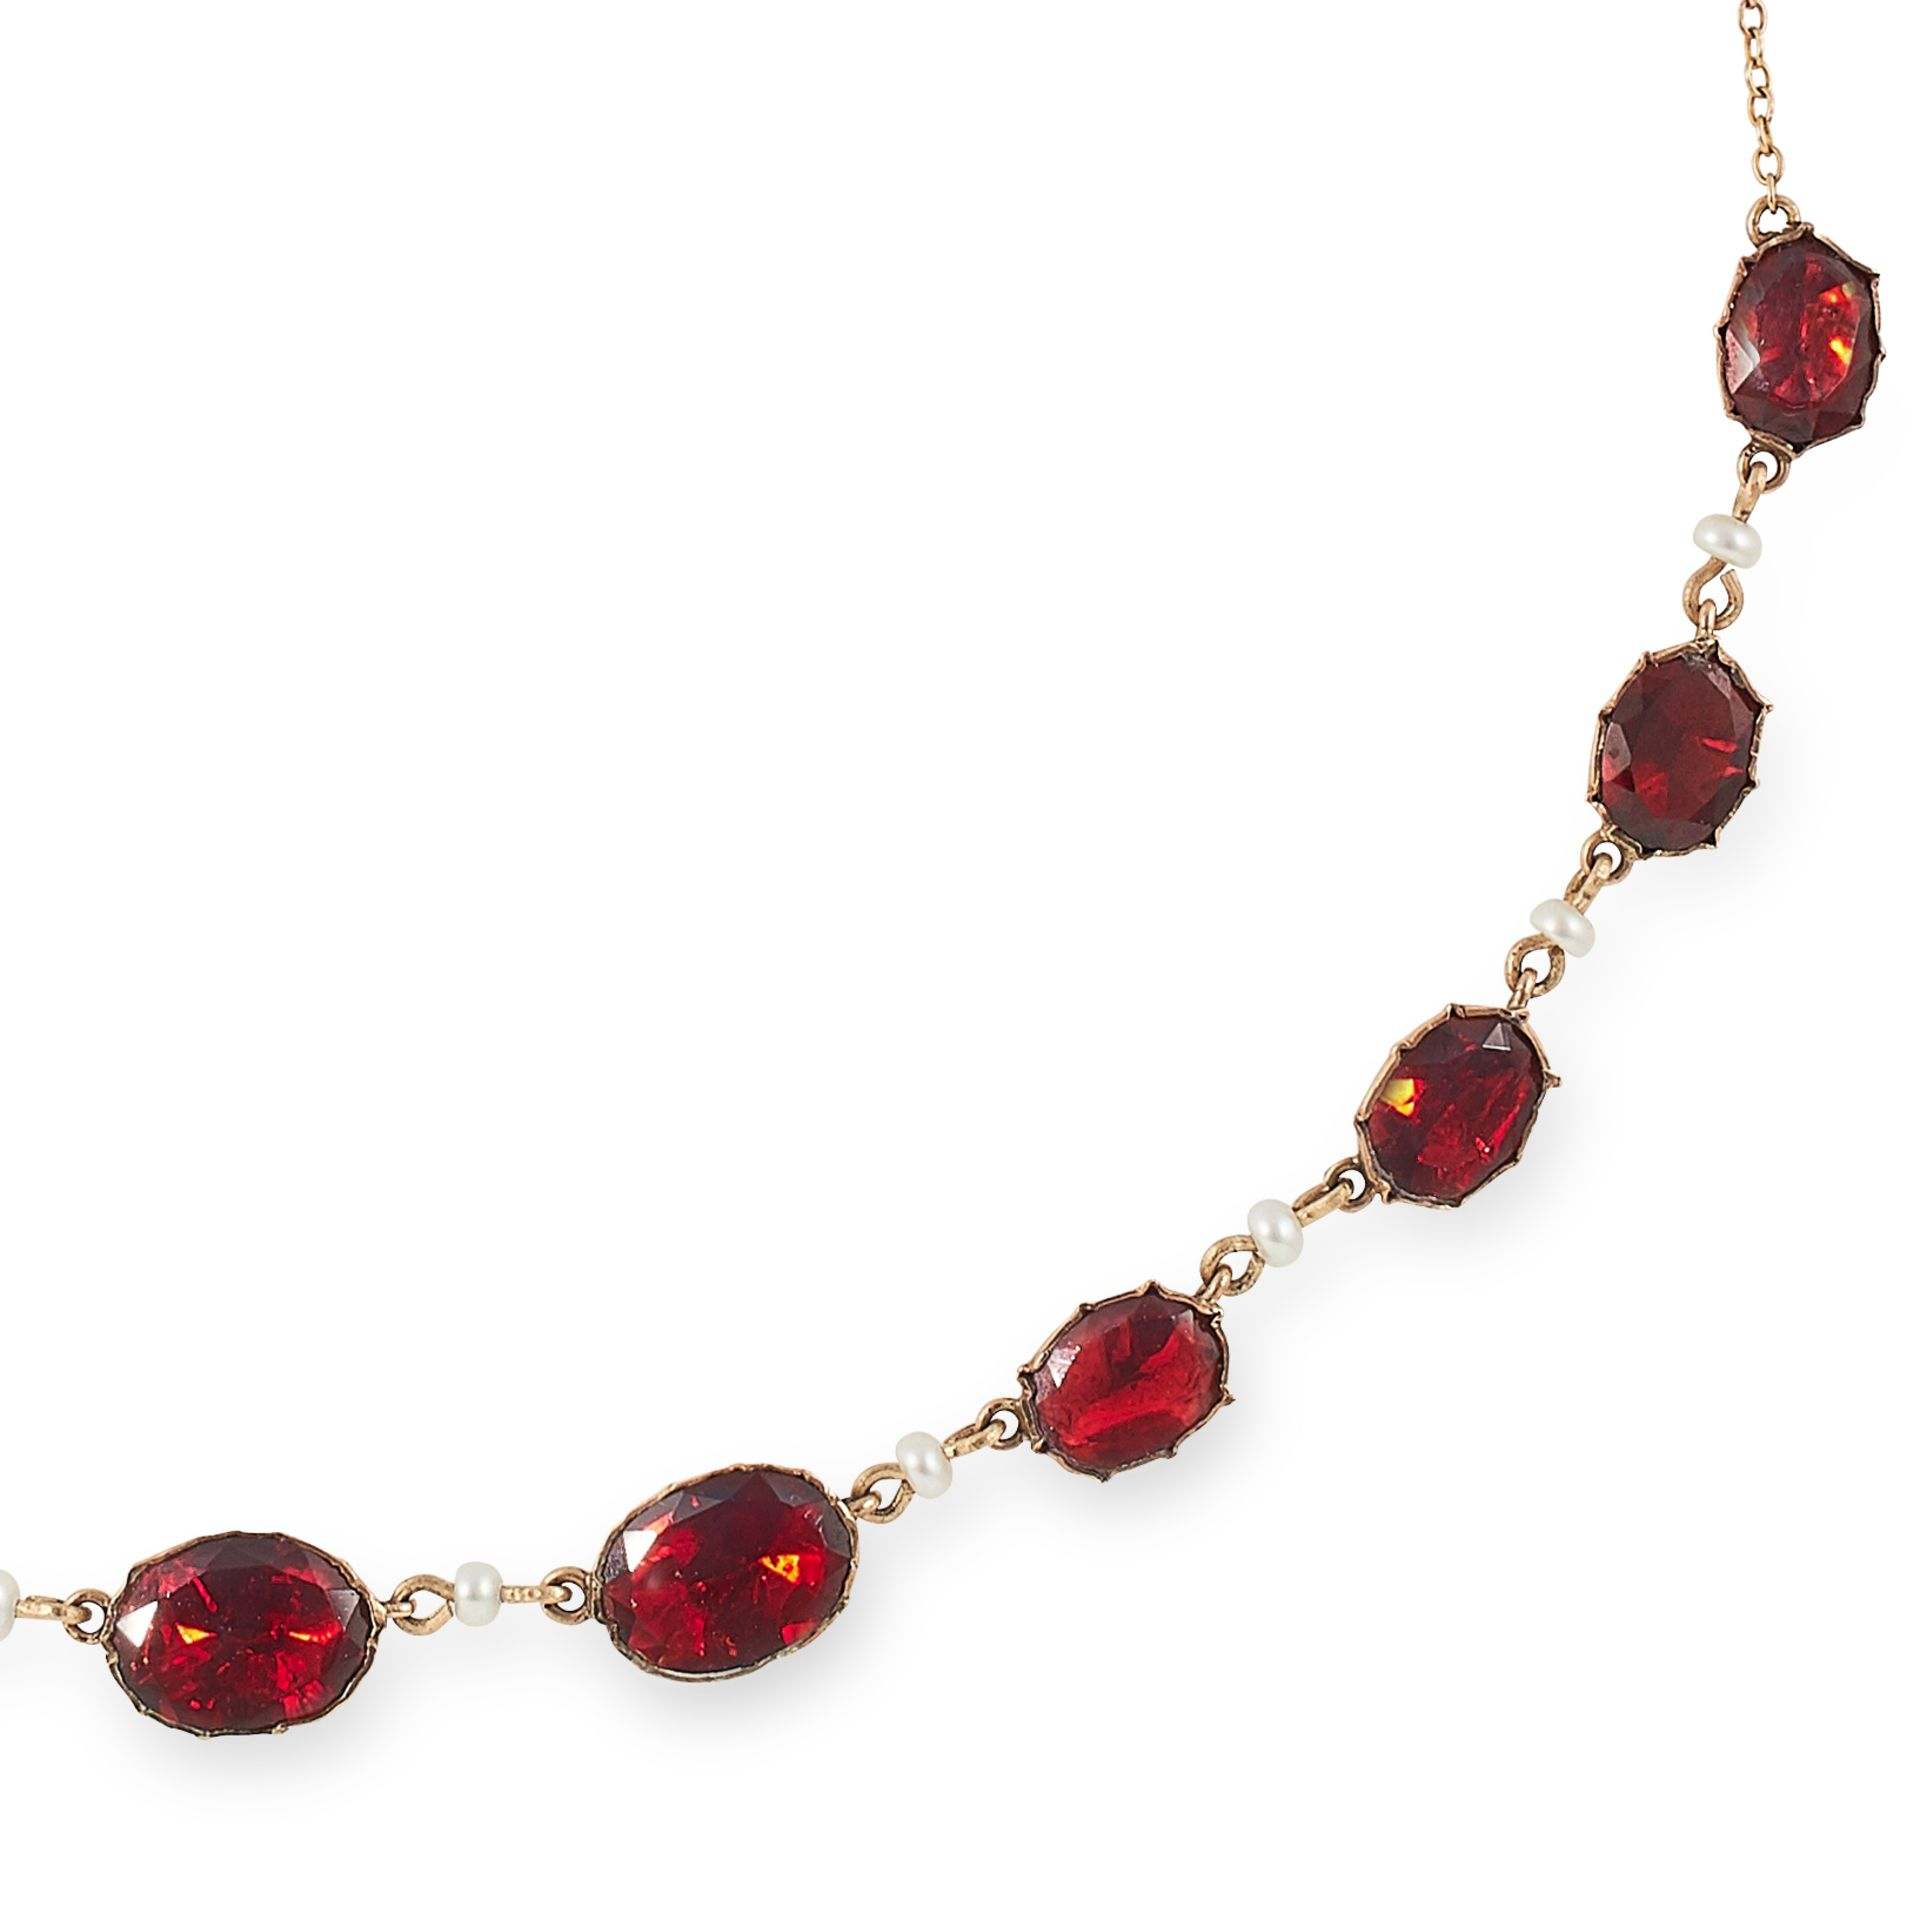 ANTIQUE GARNET AND SEED PEARL NECKLACE set with oval cut garnets and seed pearls, 43cm, 7g. - Bild 2 aus 2